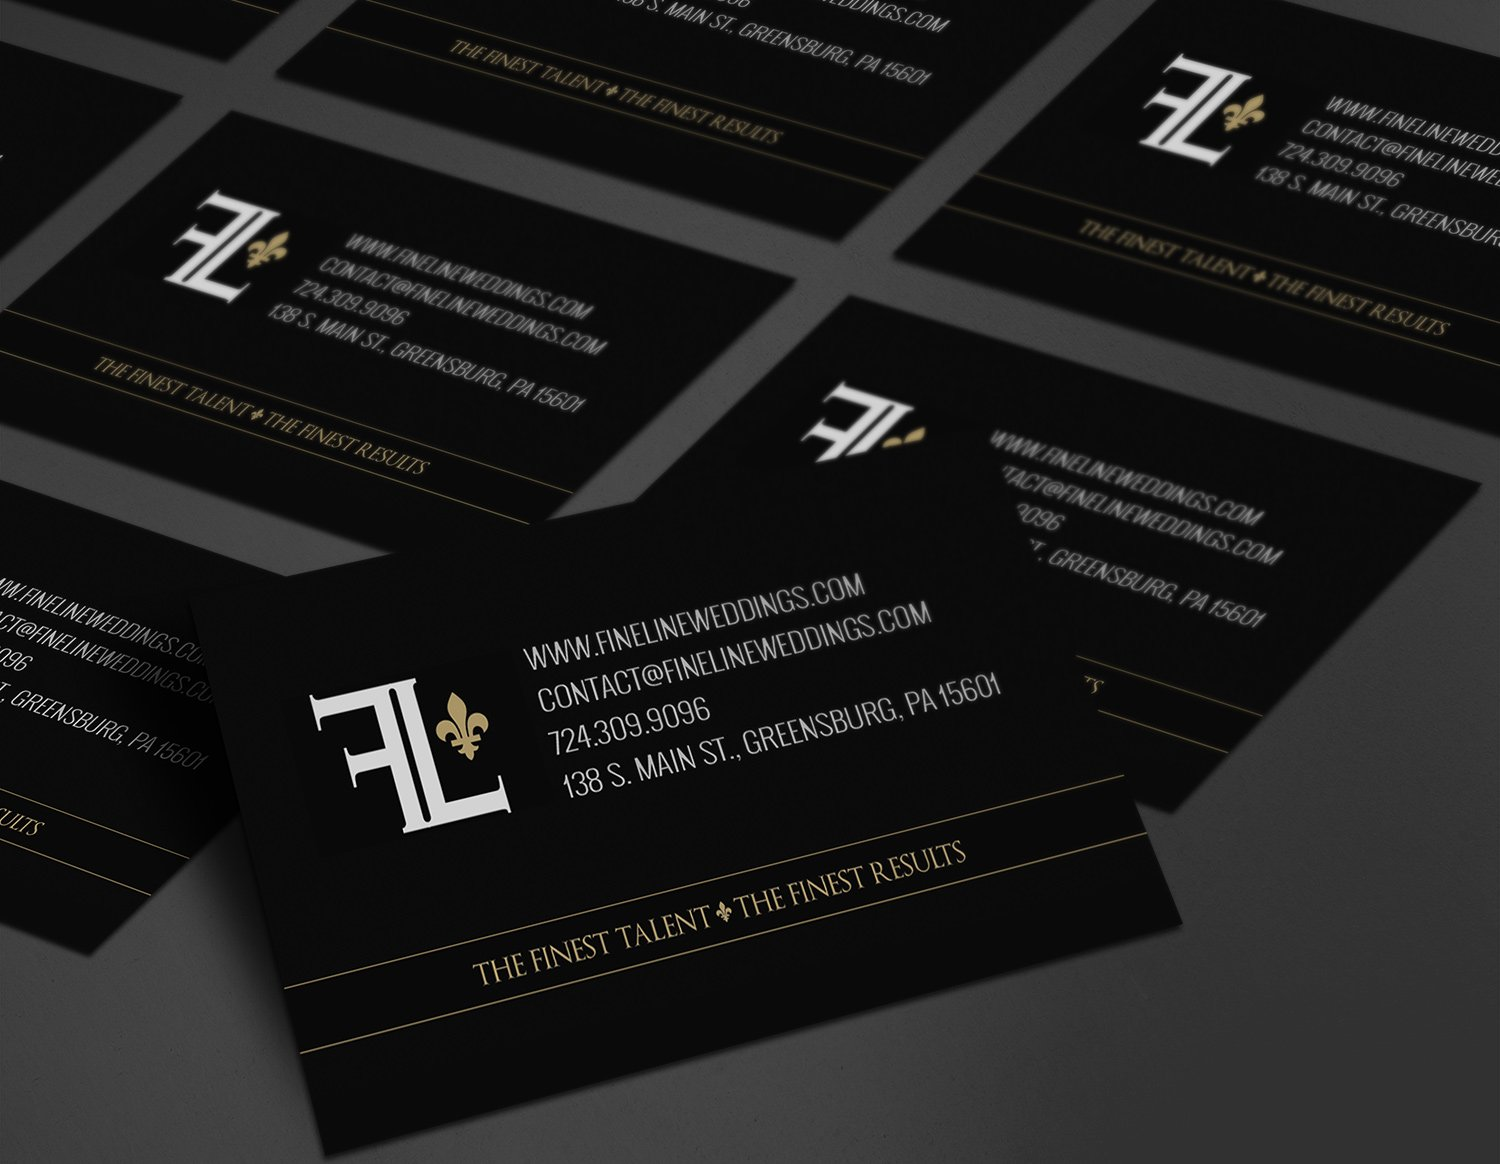 FineLine Business Card Design – The Really Awesome Little Marketing Co